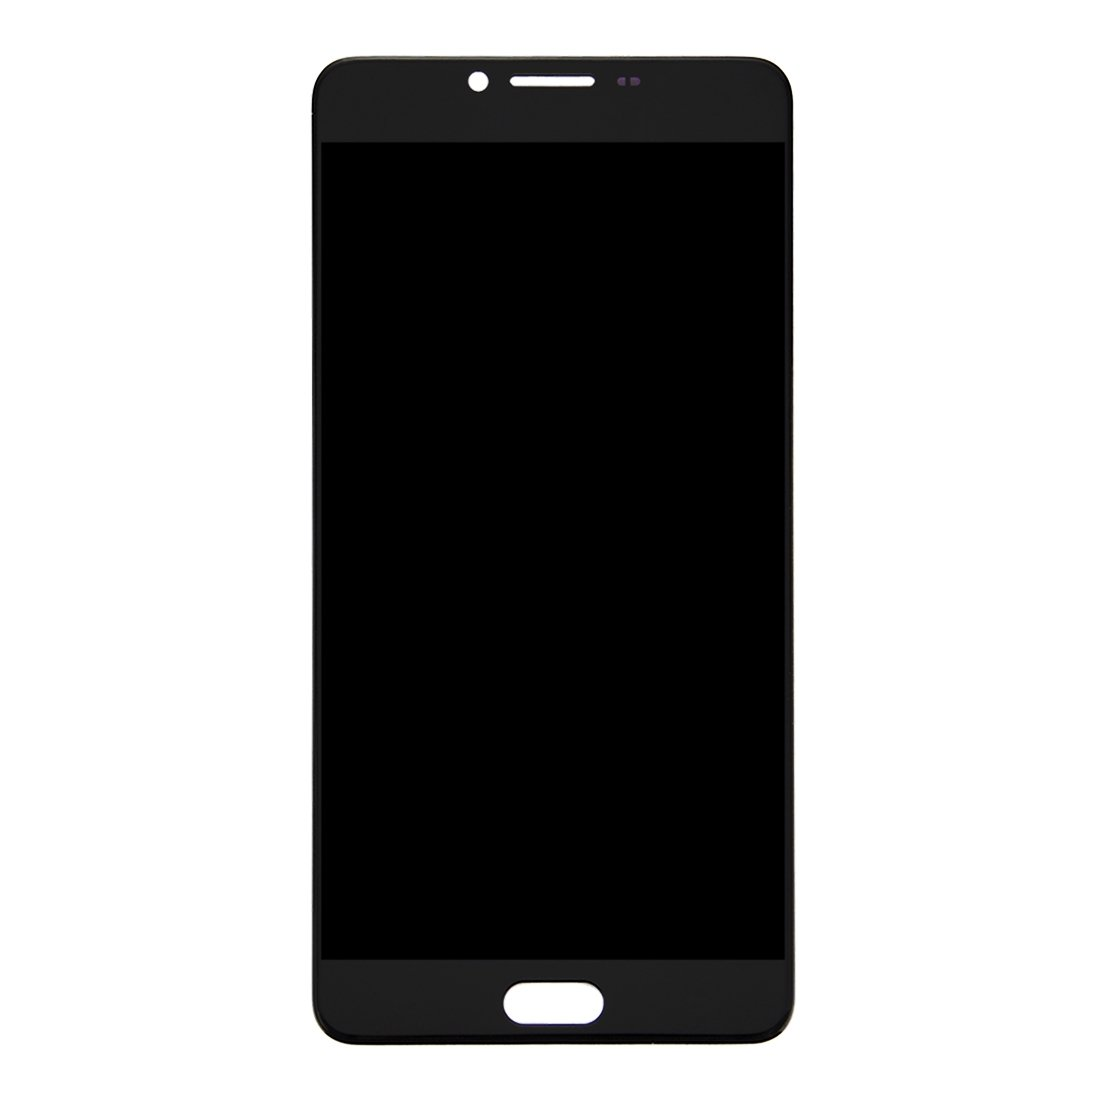 WANGYING Wangying New LCD Display + Touch Panel for Galaxy C9 Pro / C9000(Black) (Color : Black)